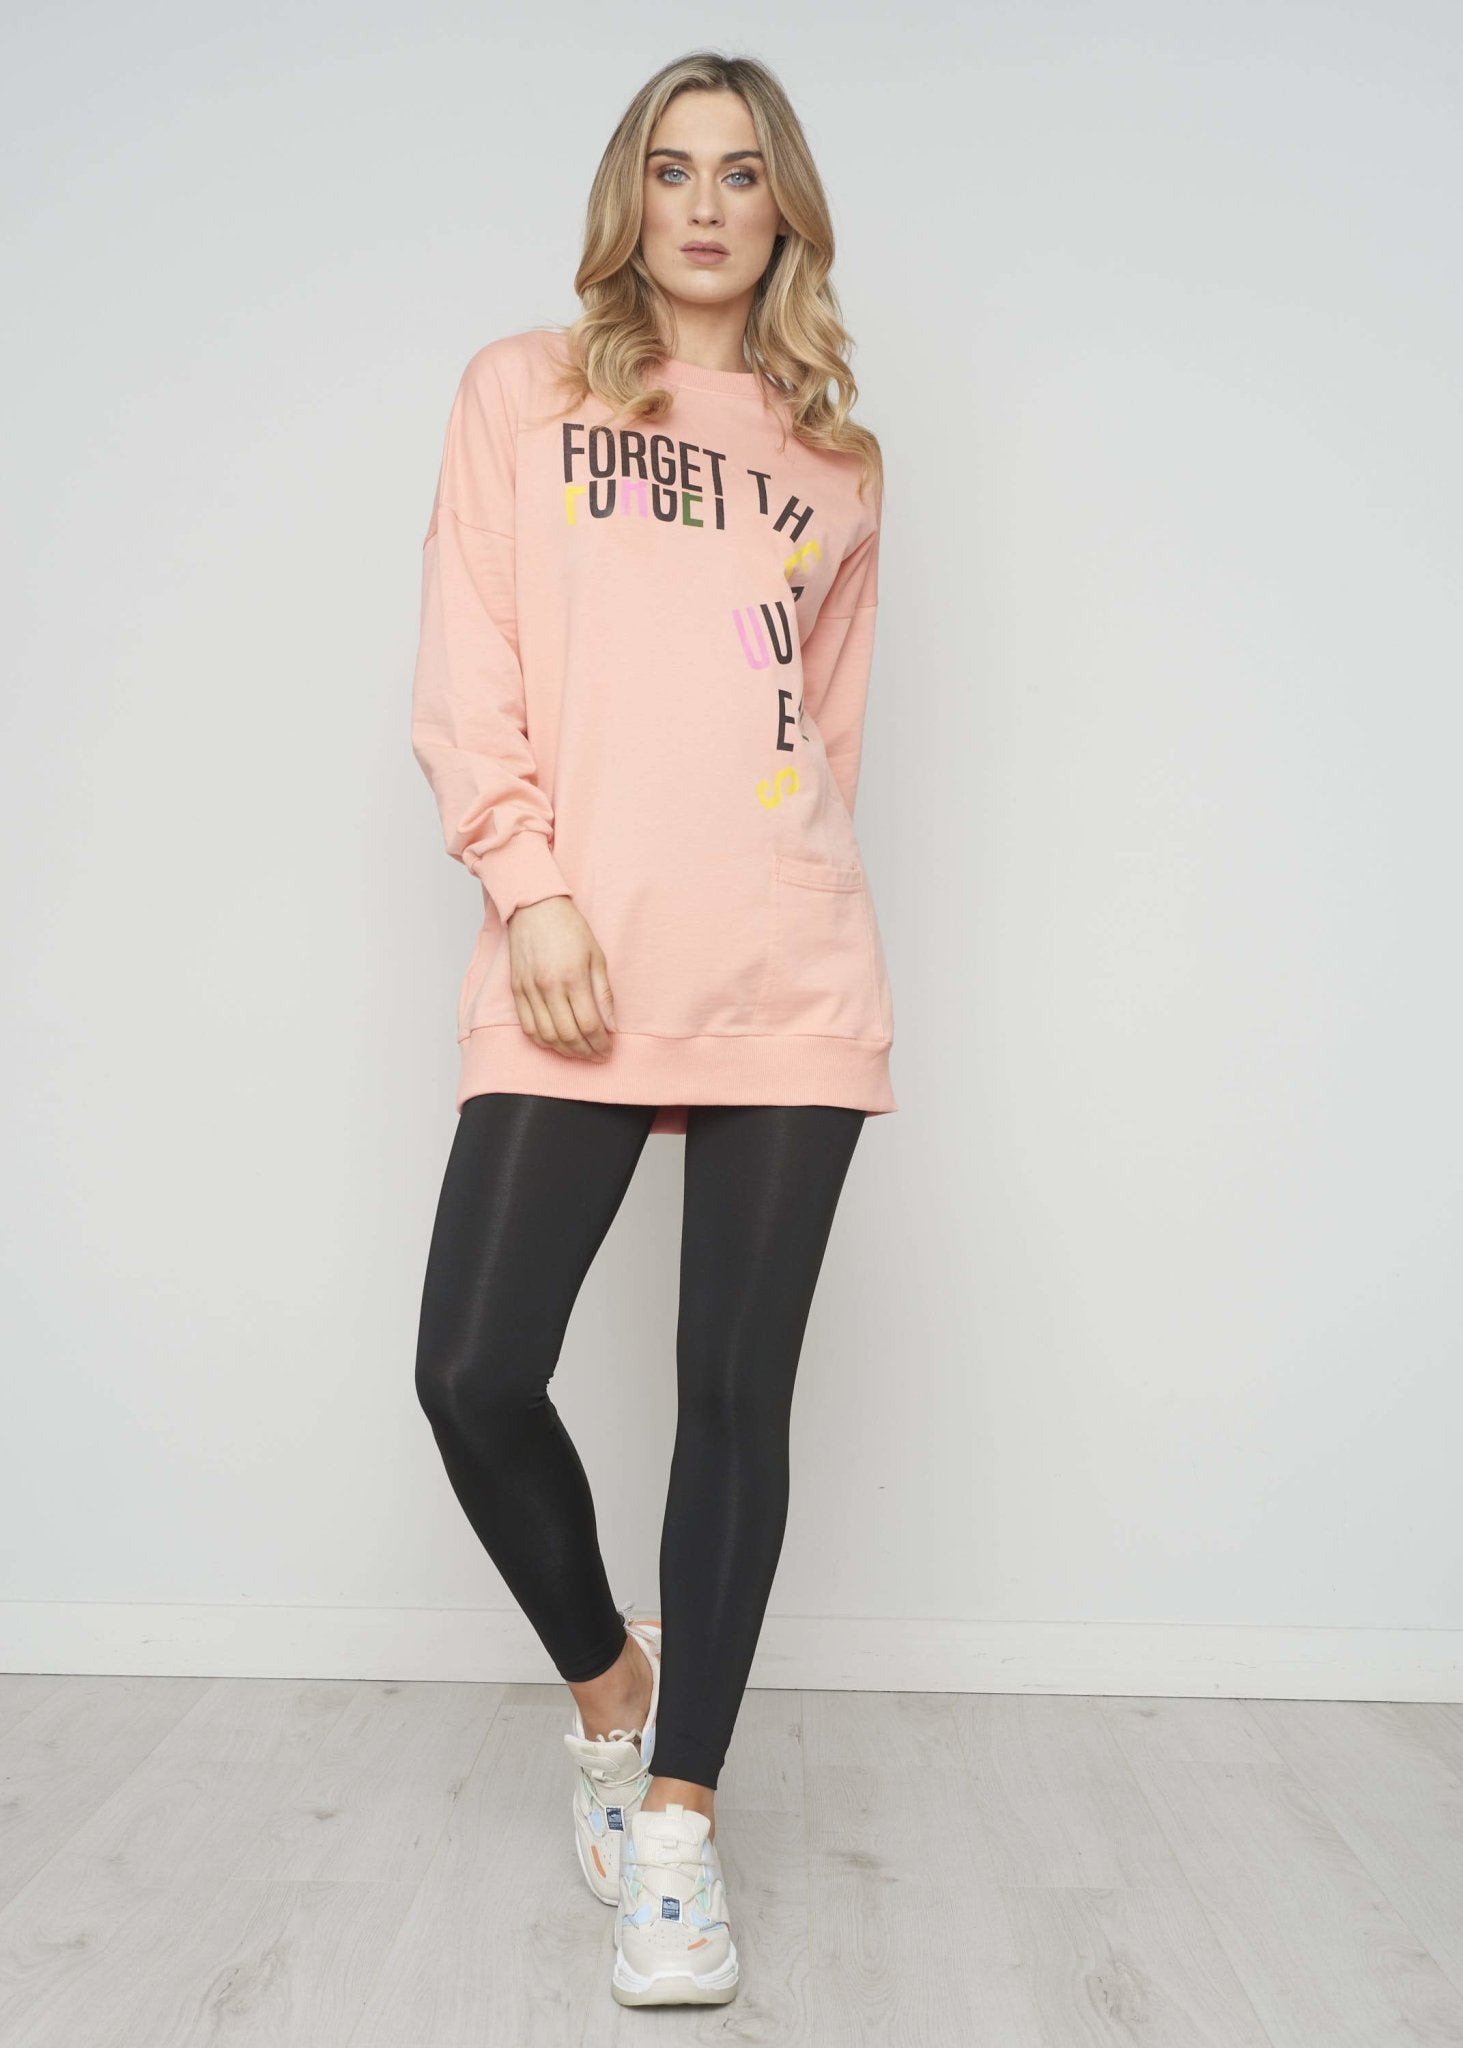 Emilia Slogan Sweatshirt In Coral - The Walk in Wardrobe